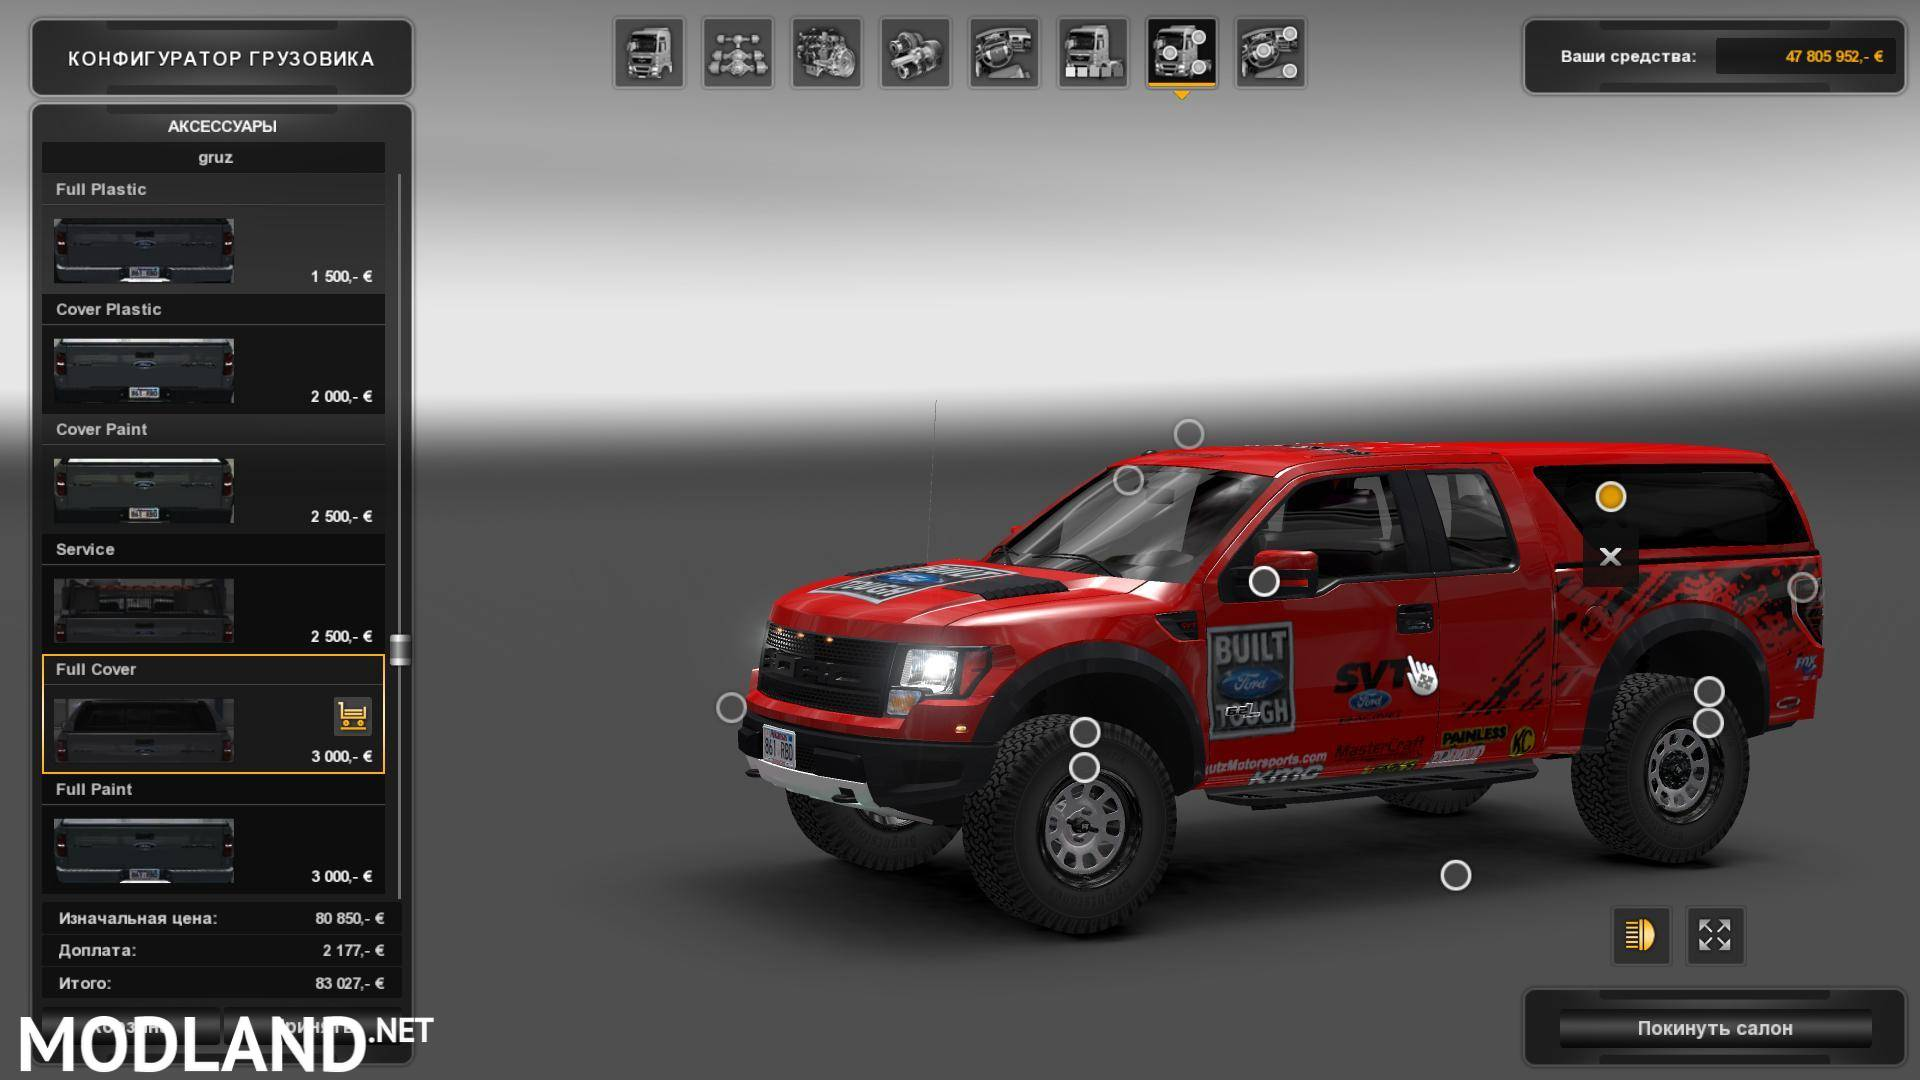 FORD F150 SVT Raptor v2.0 for 1.24 mod for ETS 2